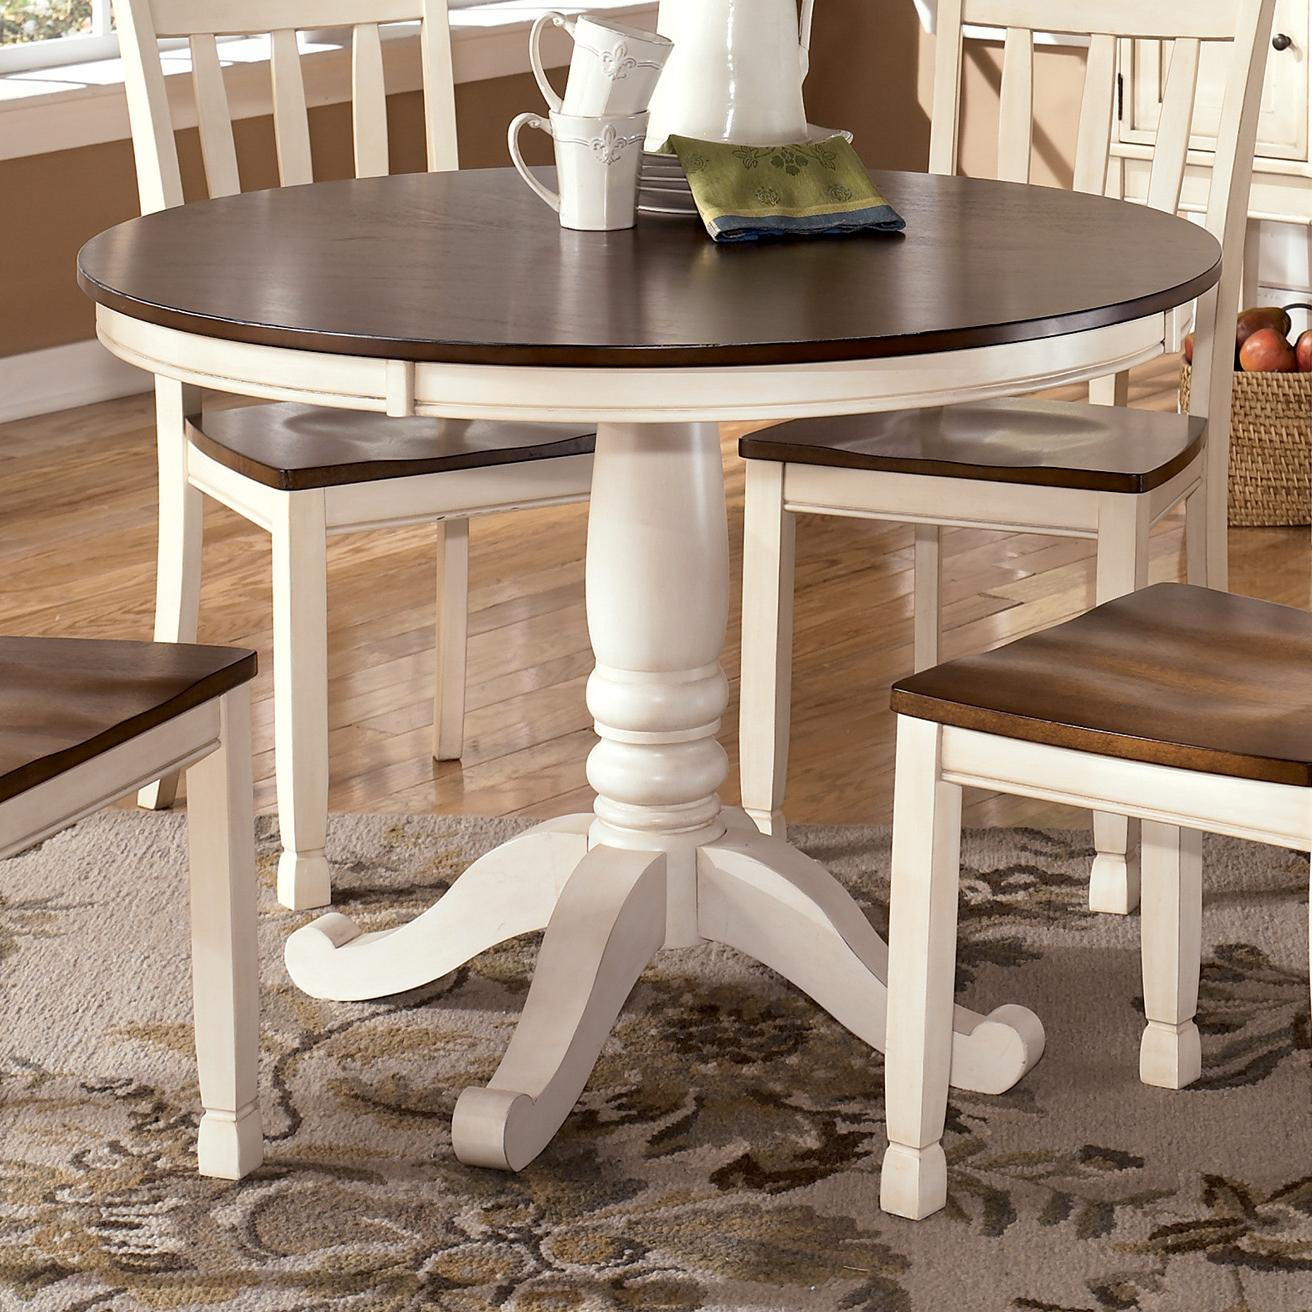 Ashley Furniture Table And Chairs Signature Design By Ashley Whitesburg Two Tone Round Table